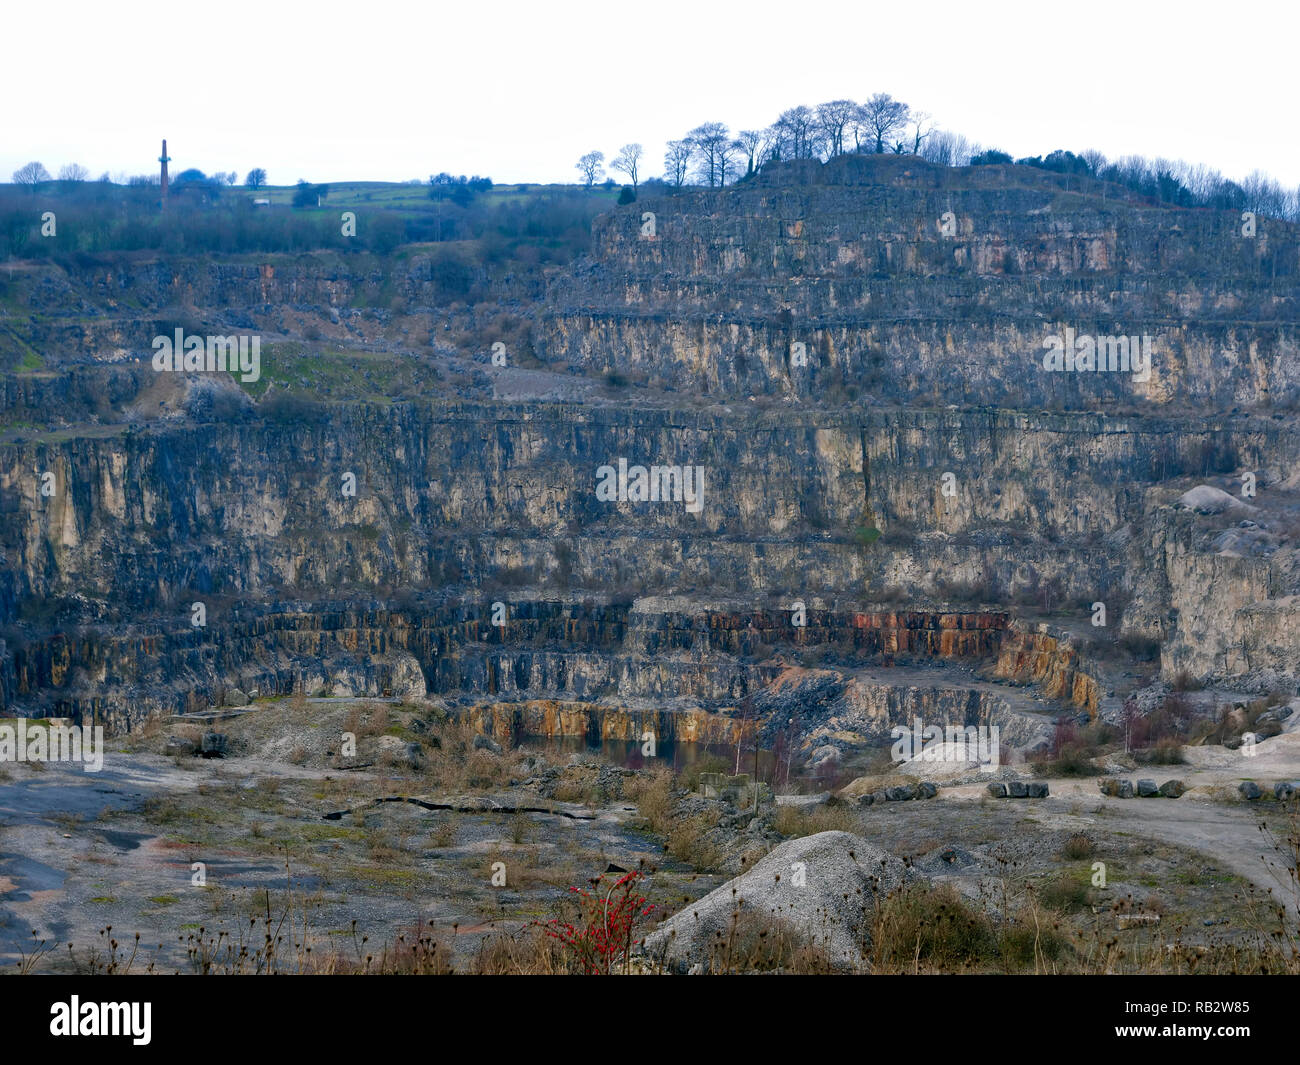 Derbyshire, UK. 06th Jan, 2019. Dangerous old Tarmac Middle Peak Quarry workings  near an abandoned light blue Ford Fusion + car parked at Stoney Wood entrance, Wirksworth, Derbyshire, since the New Year has been reported to the Police as possible missing persons or abandoned vehicle Credit: Doug Blane/Alamy Live News - Stock Image